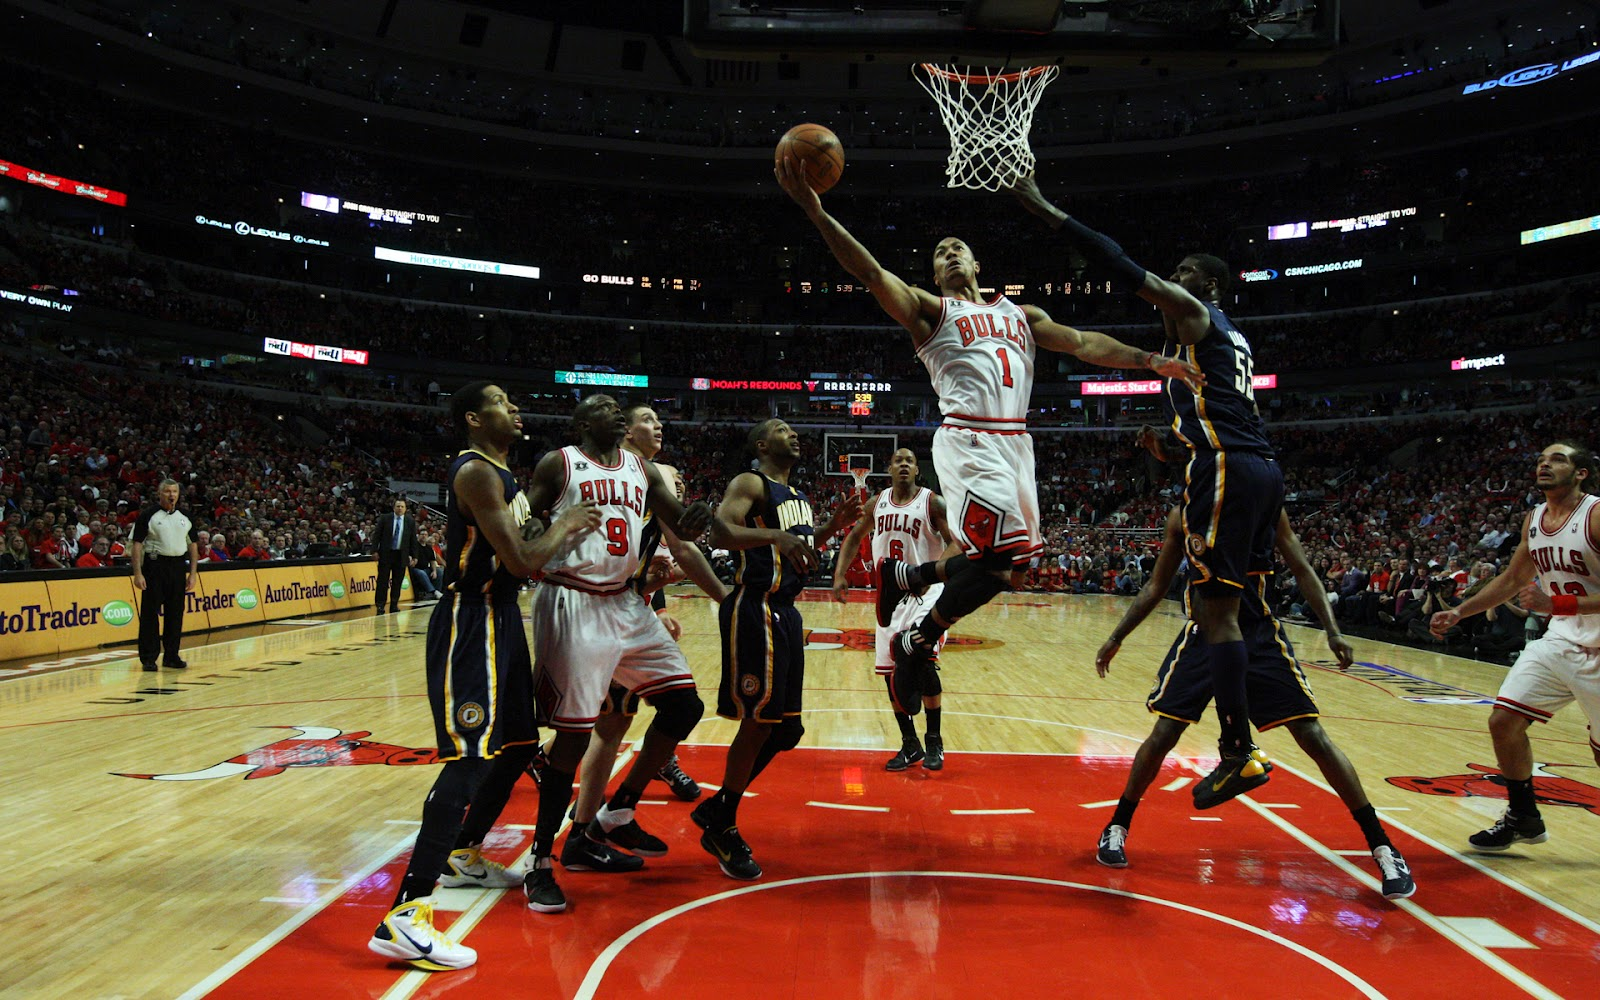 http://2.bp.blogspot.com/-D5-jqfK2zQk/T0feUMrxc-I/AAAAAAAABUg/5UXSOYpZwXc/s1600/nba+wallpaper%252C+basketball%252C+chicago+bulls%252C+the+national+association+of+basketball.jpg